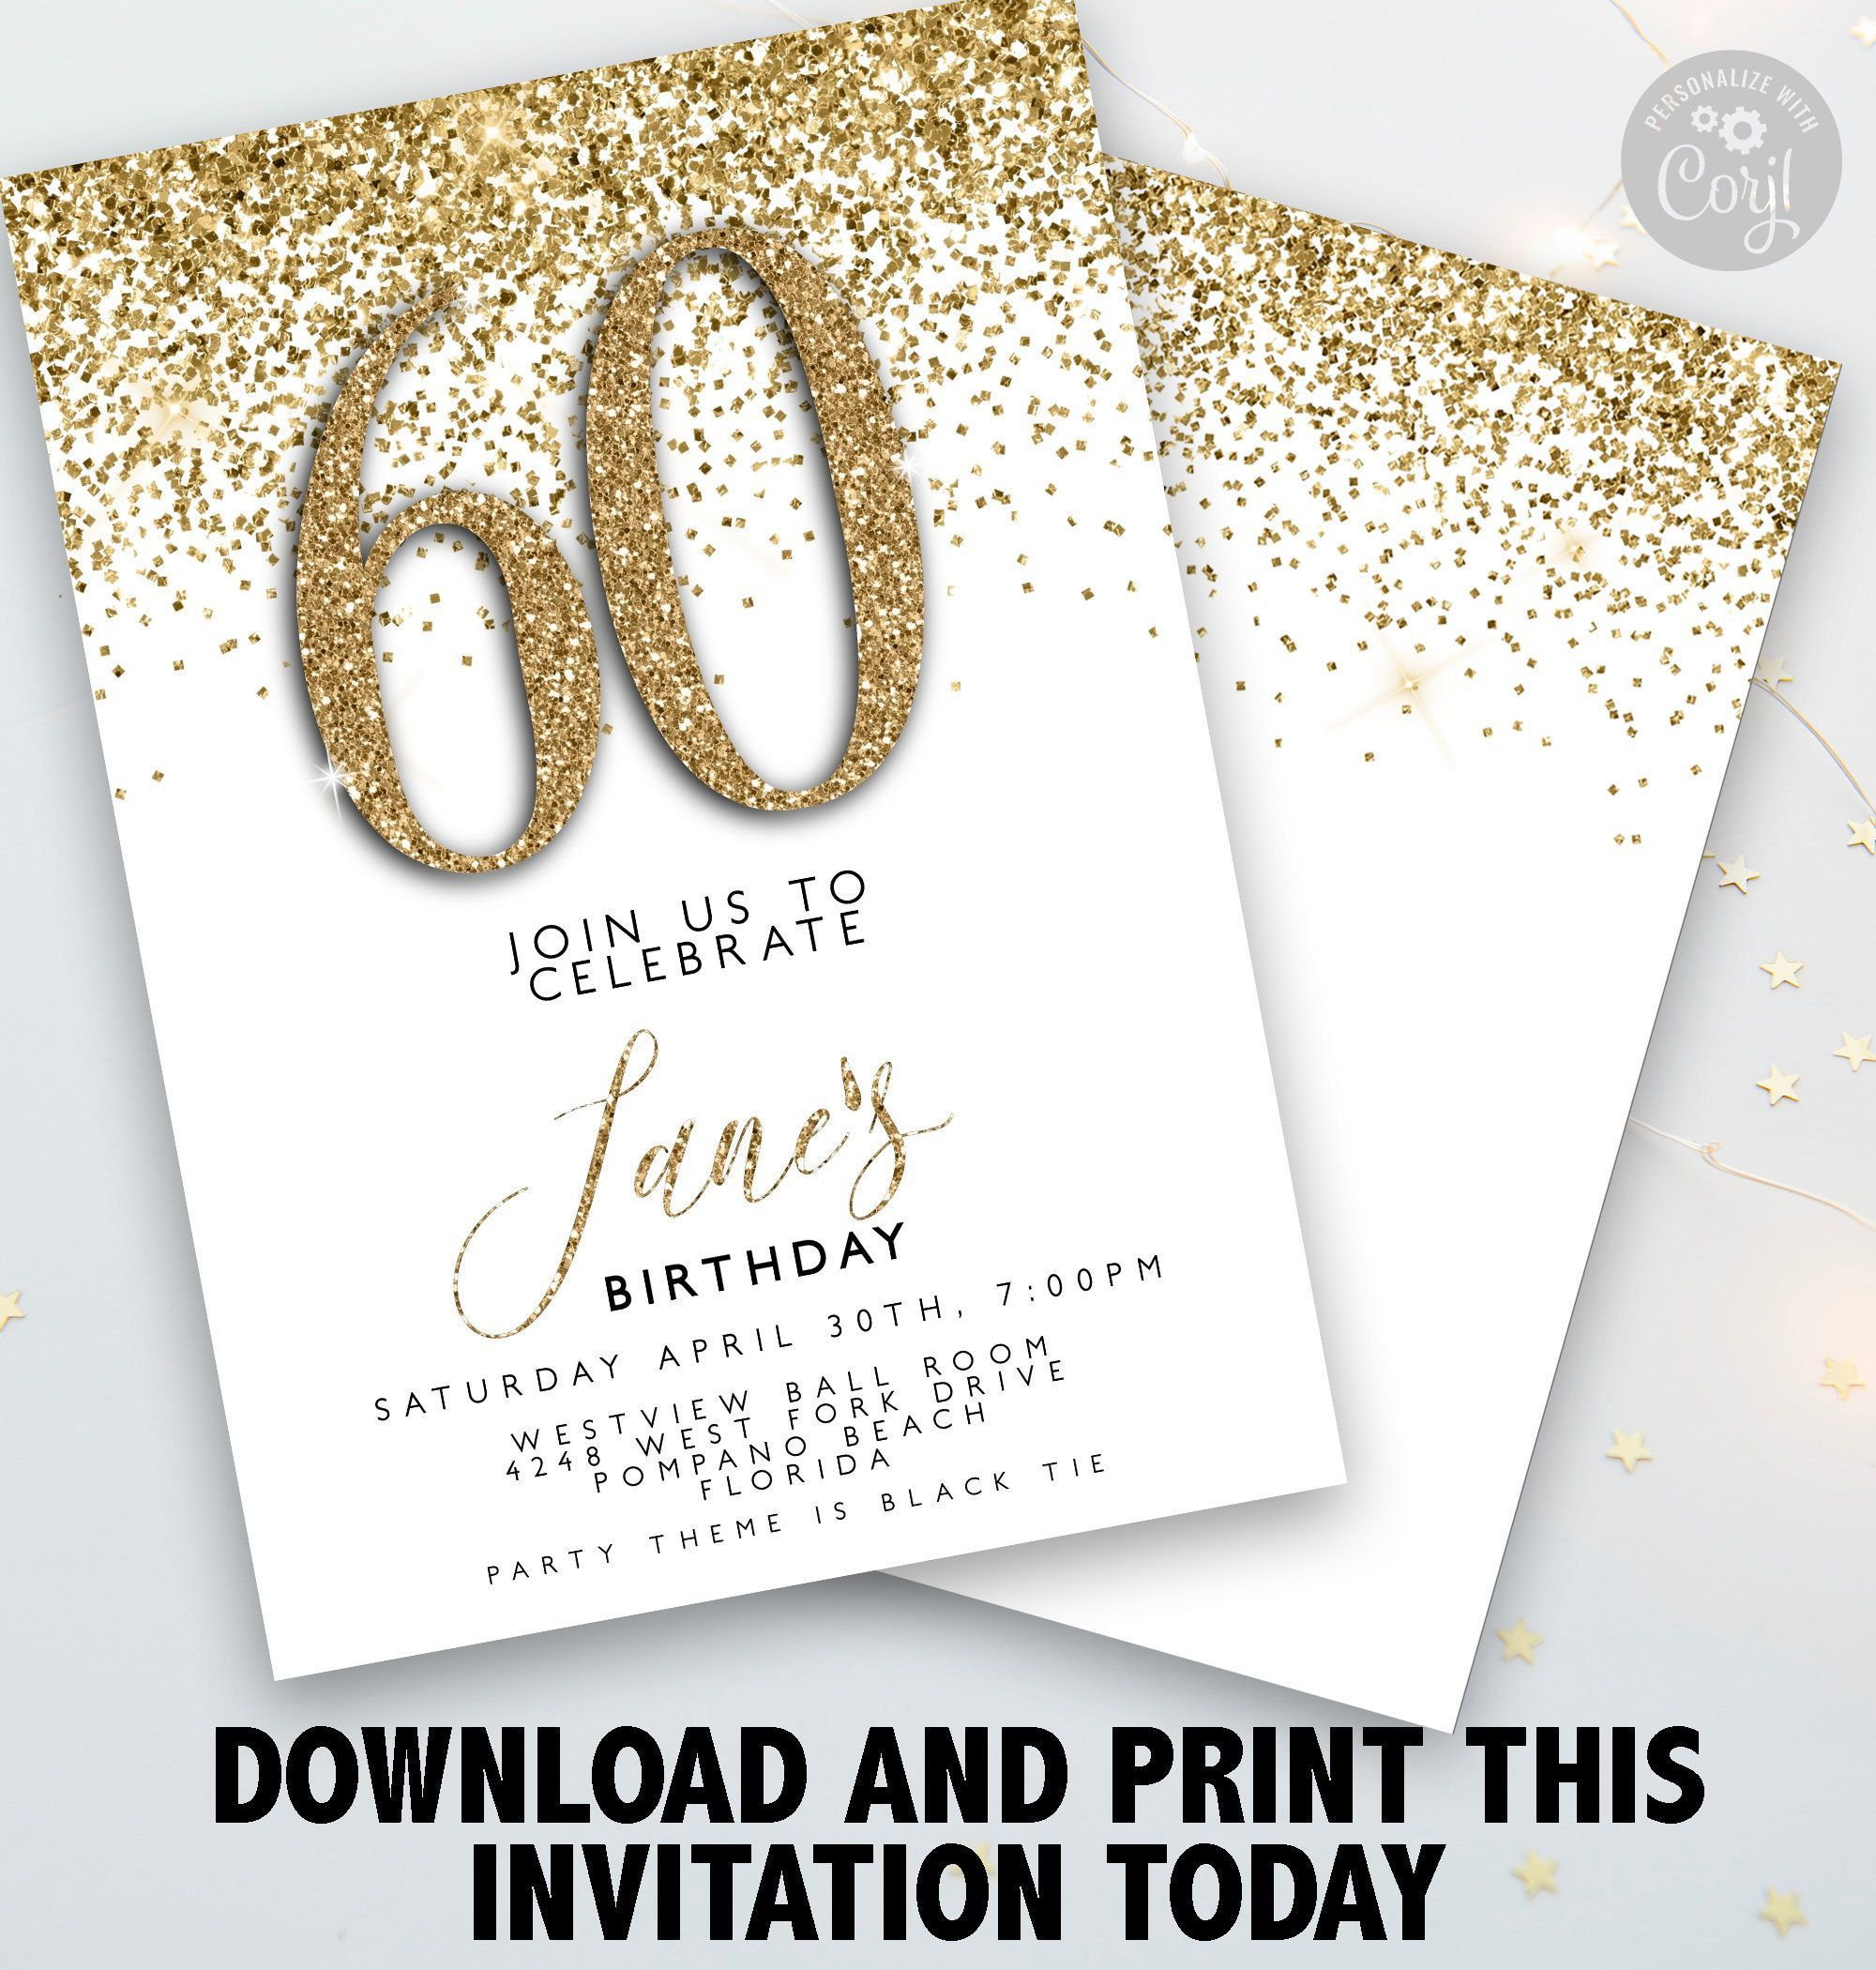 003 Remarkable 60 Birthday Invite Template Example  Templates 60th Printable FreeFull